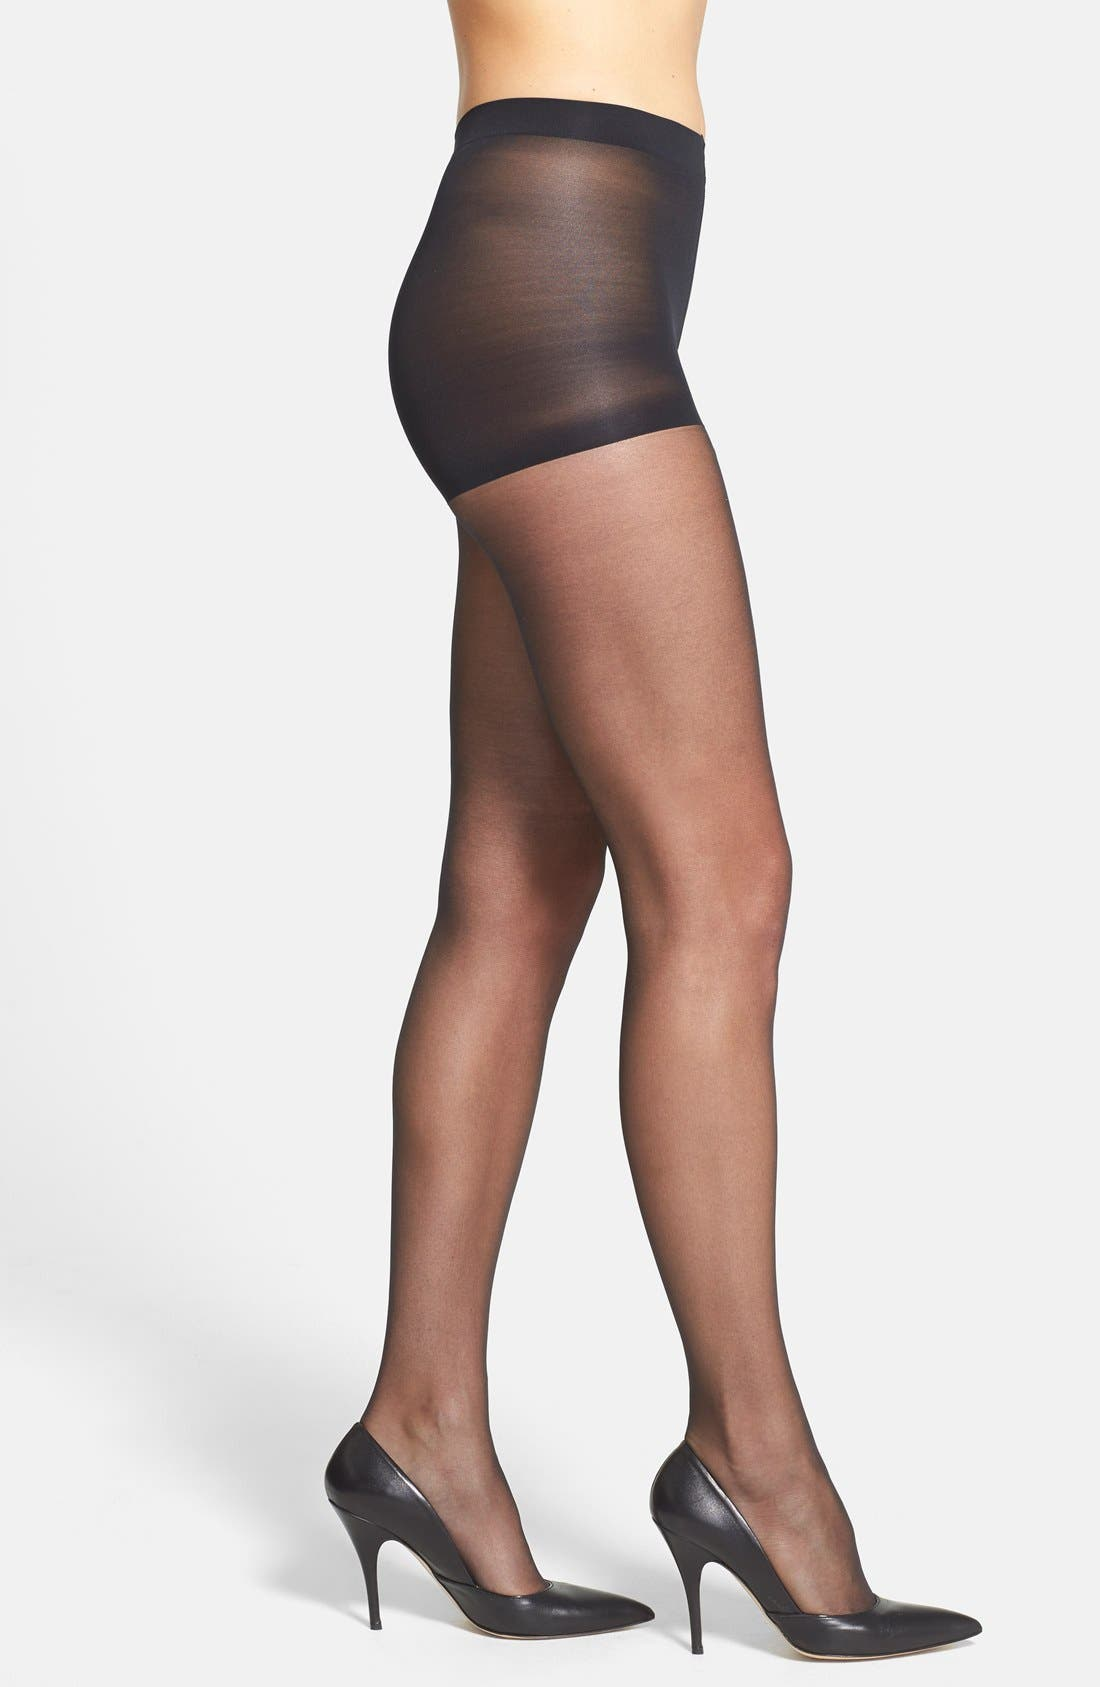 'Ultra Bare - Infinite Sheer' Control Top Pantyhose,                             Main thumbnail 1, color,                             BLACK